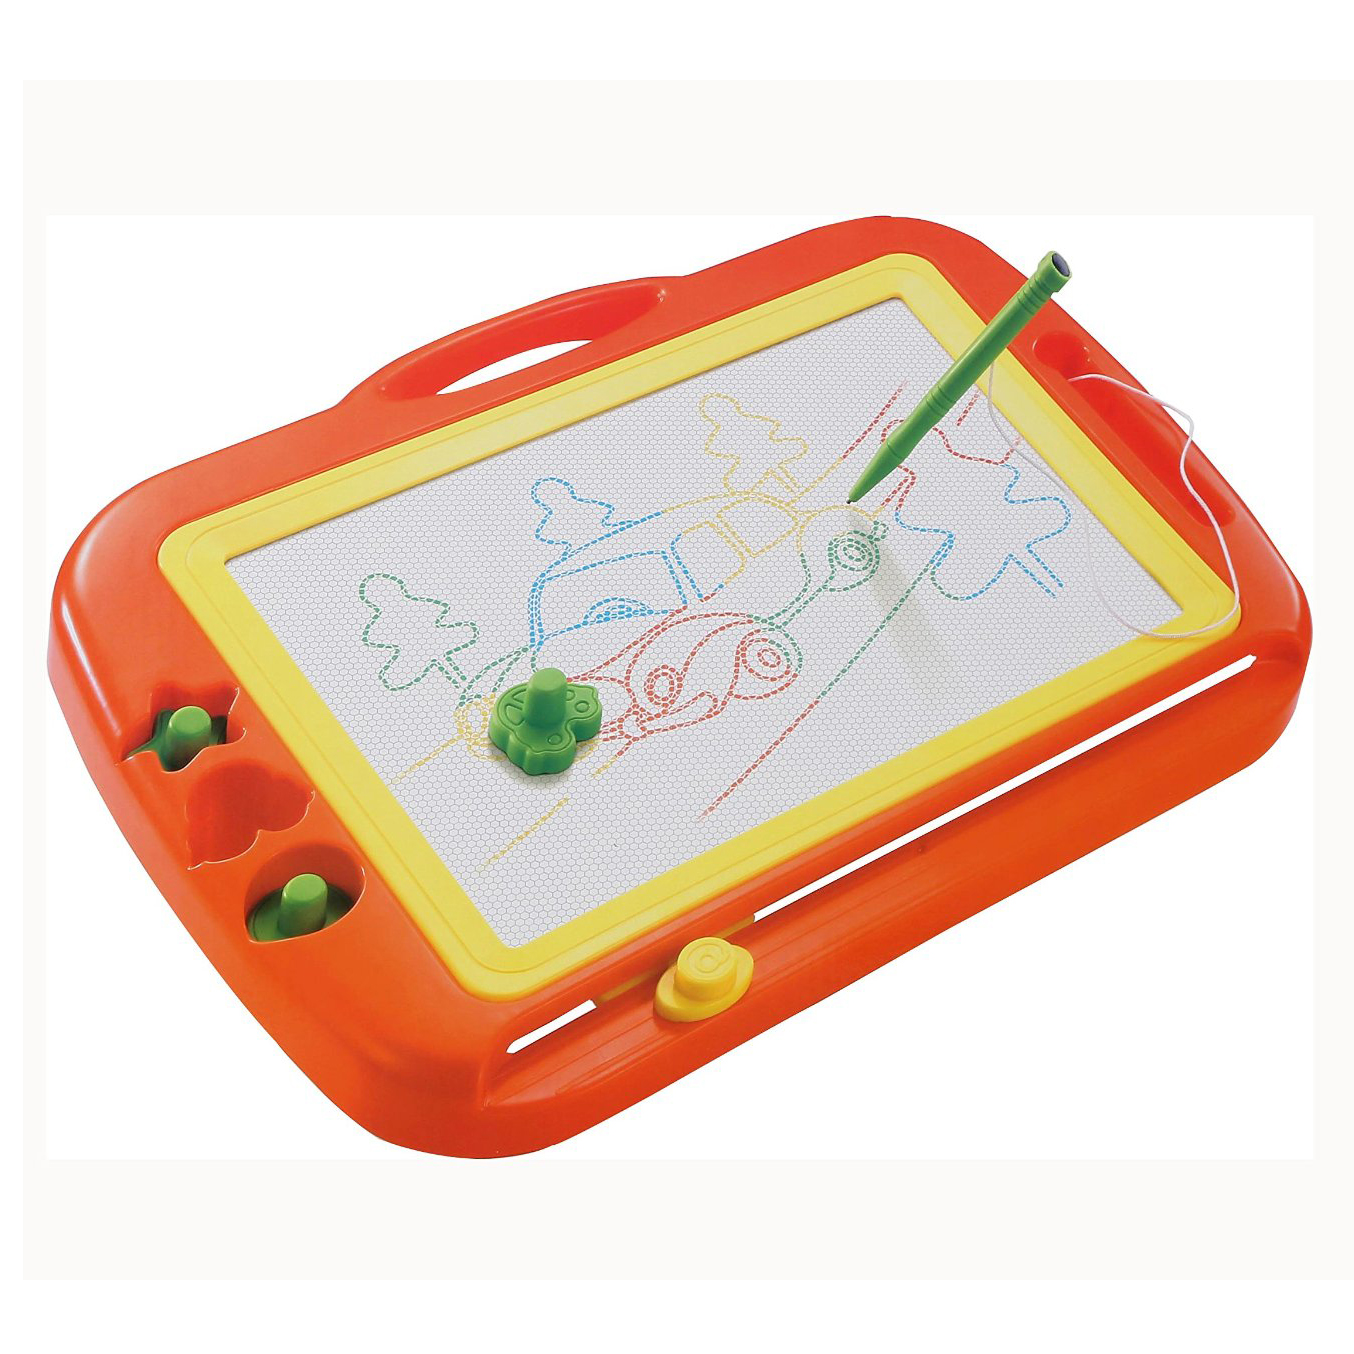 ABWE Magnetic Drawing Colorful Erasable Board Large Size Doodle Sketch Kids Educational Toys with Three Stamper Orange